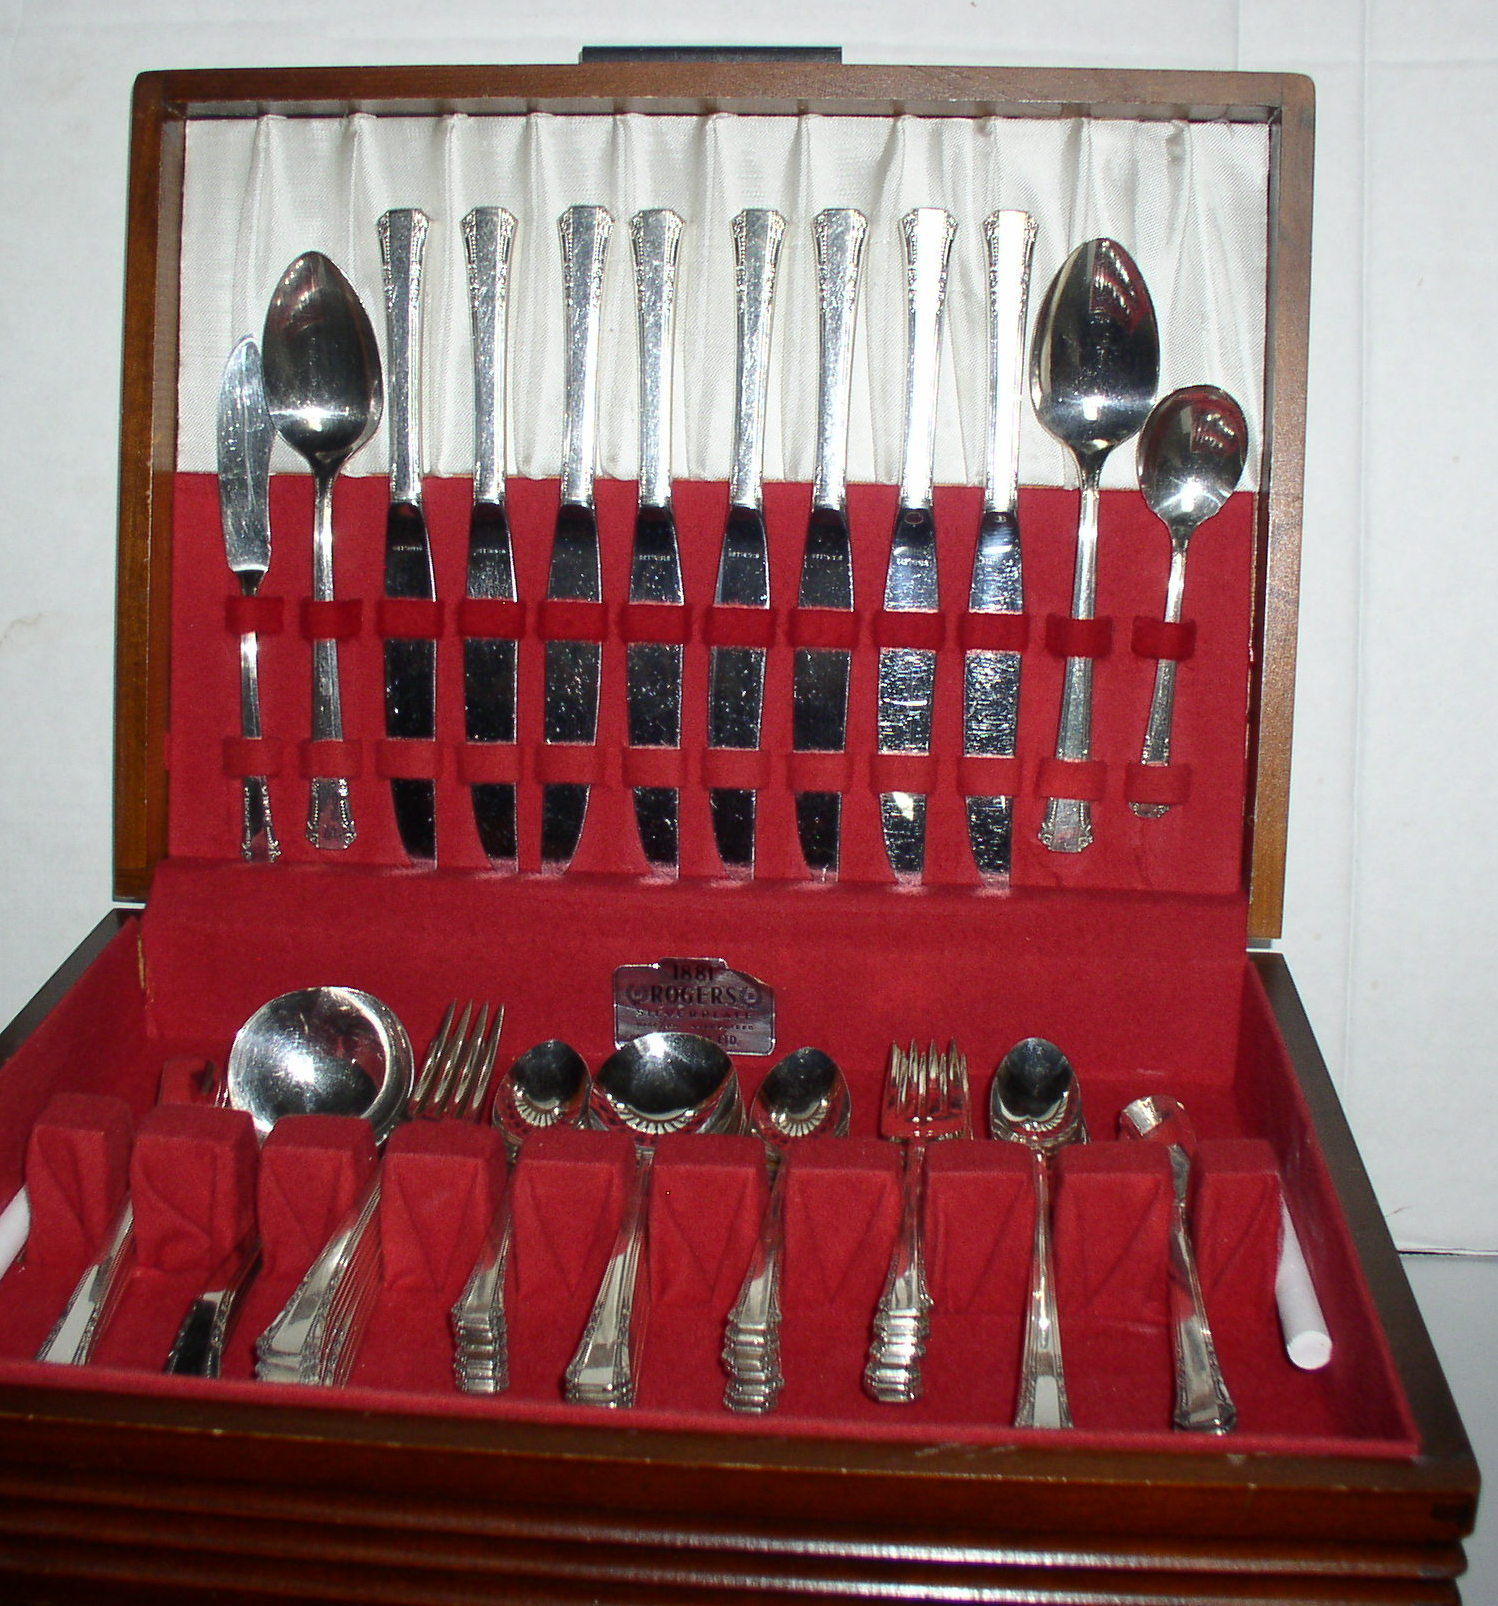 1881 Rogers Oneida Del Mar Pattern Silverplate Flatware